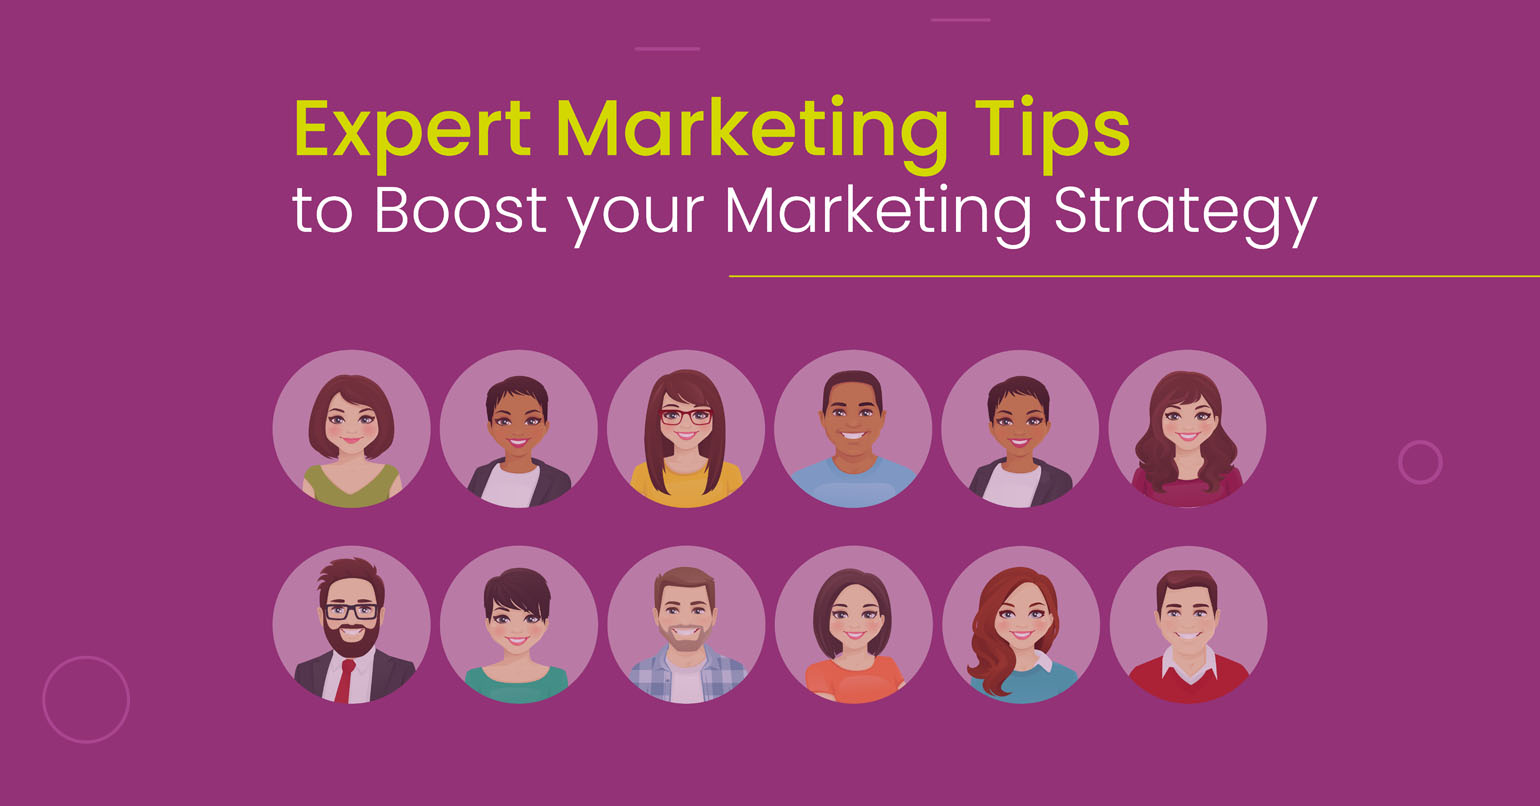 20+ Expert Marketing Tips to Boost your Marketing Strategy